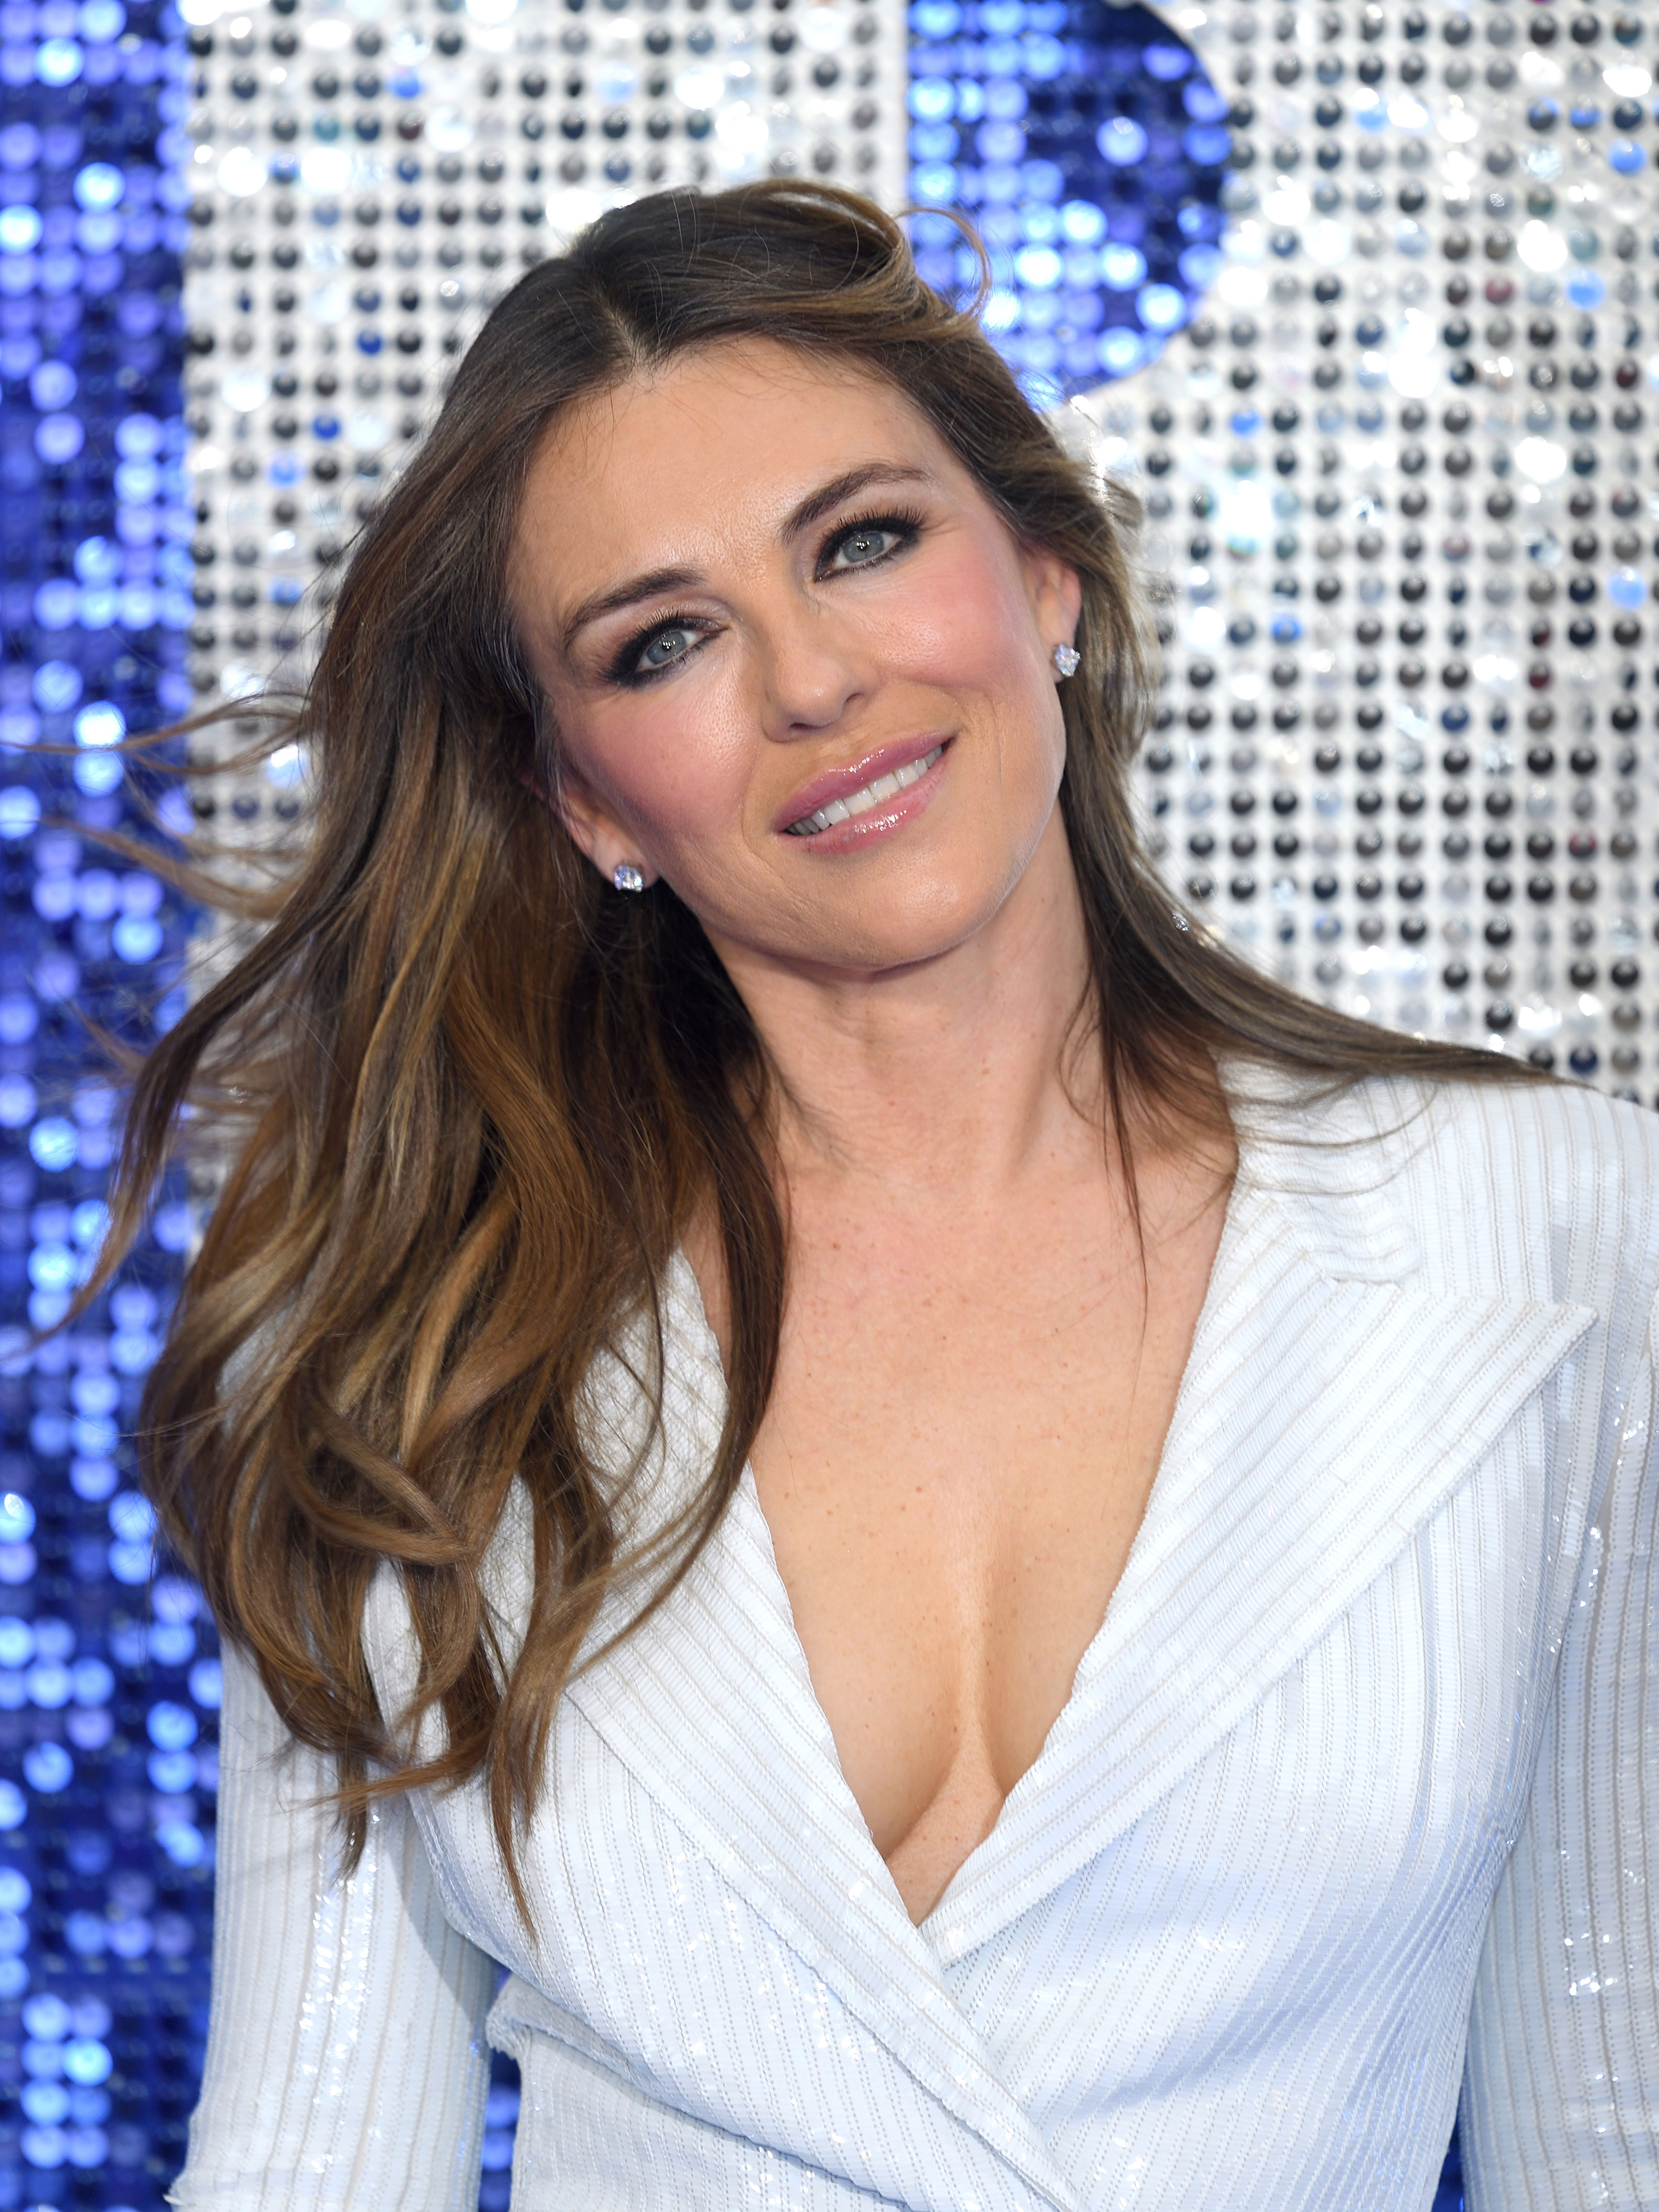 Liz Hurley stuns fans as she wears sexy nurse outfit for Halloween